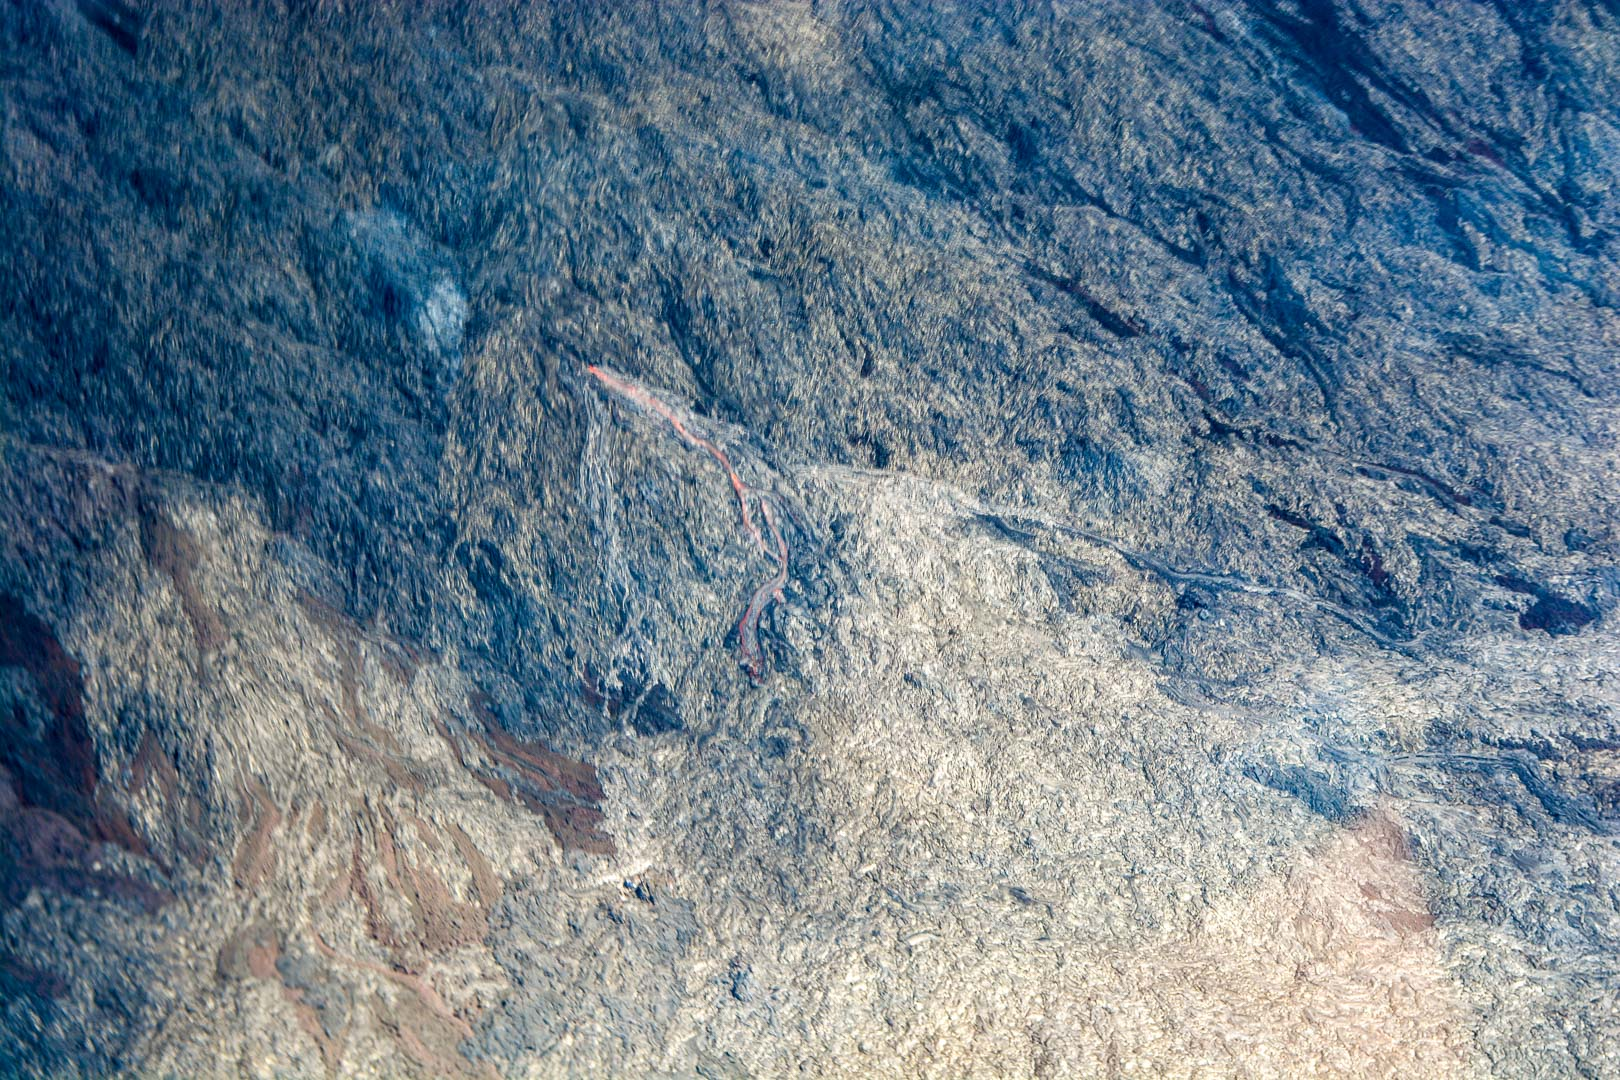 See if you can spot the lava flow. In daylight, lava looks black, making it undetectable from older cooled-off lava. The orange color we're used to seeing is more prevalent at night.